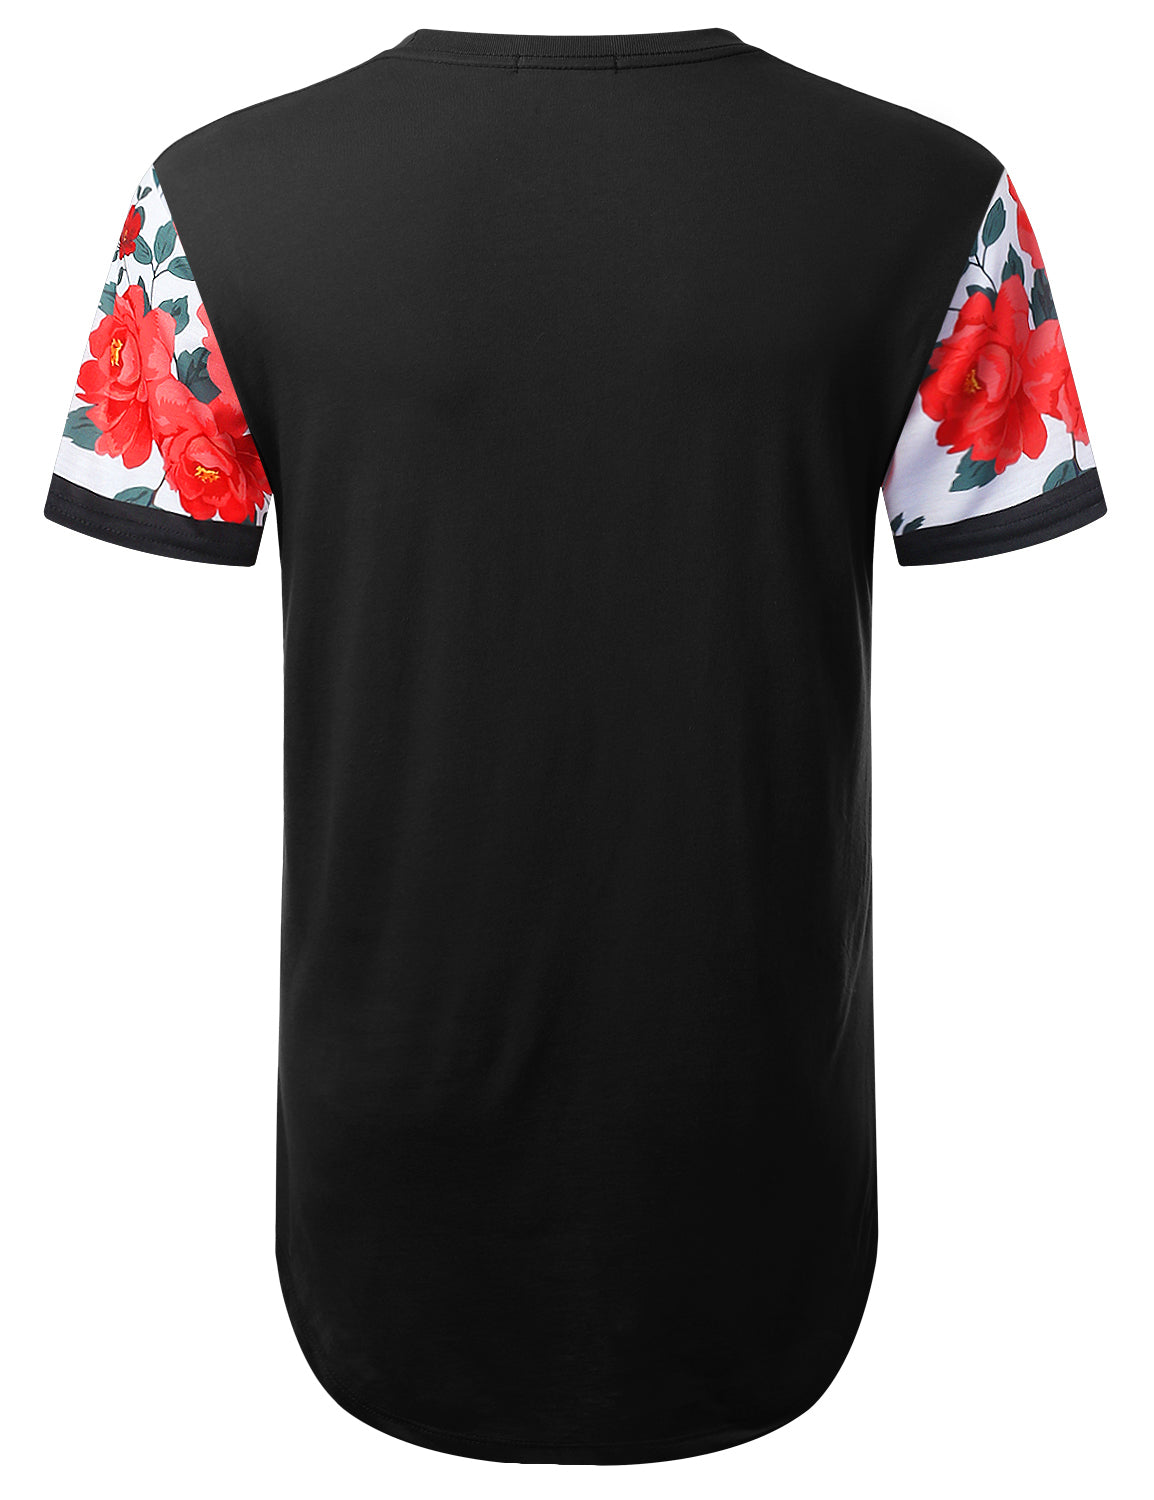 BLACK Floral Panel Pocket Longline T-shirt - URBANCREWS